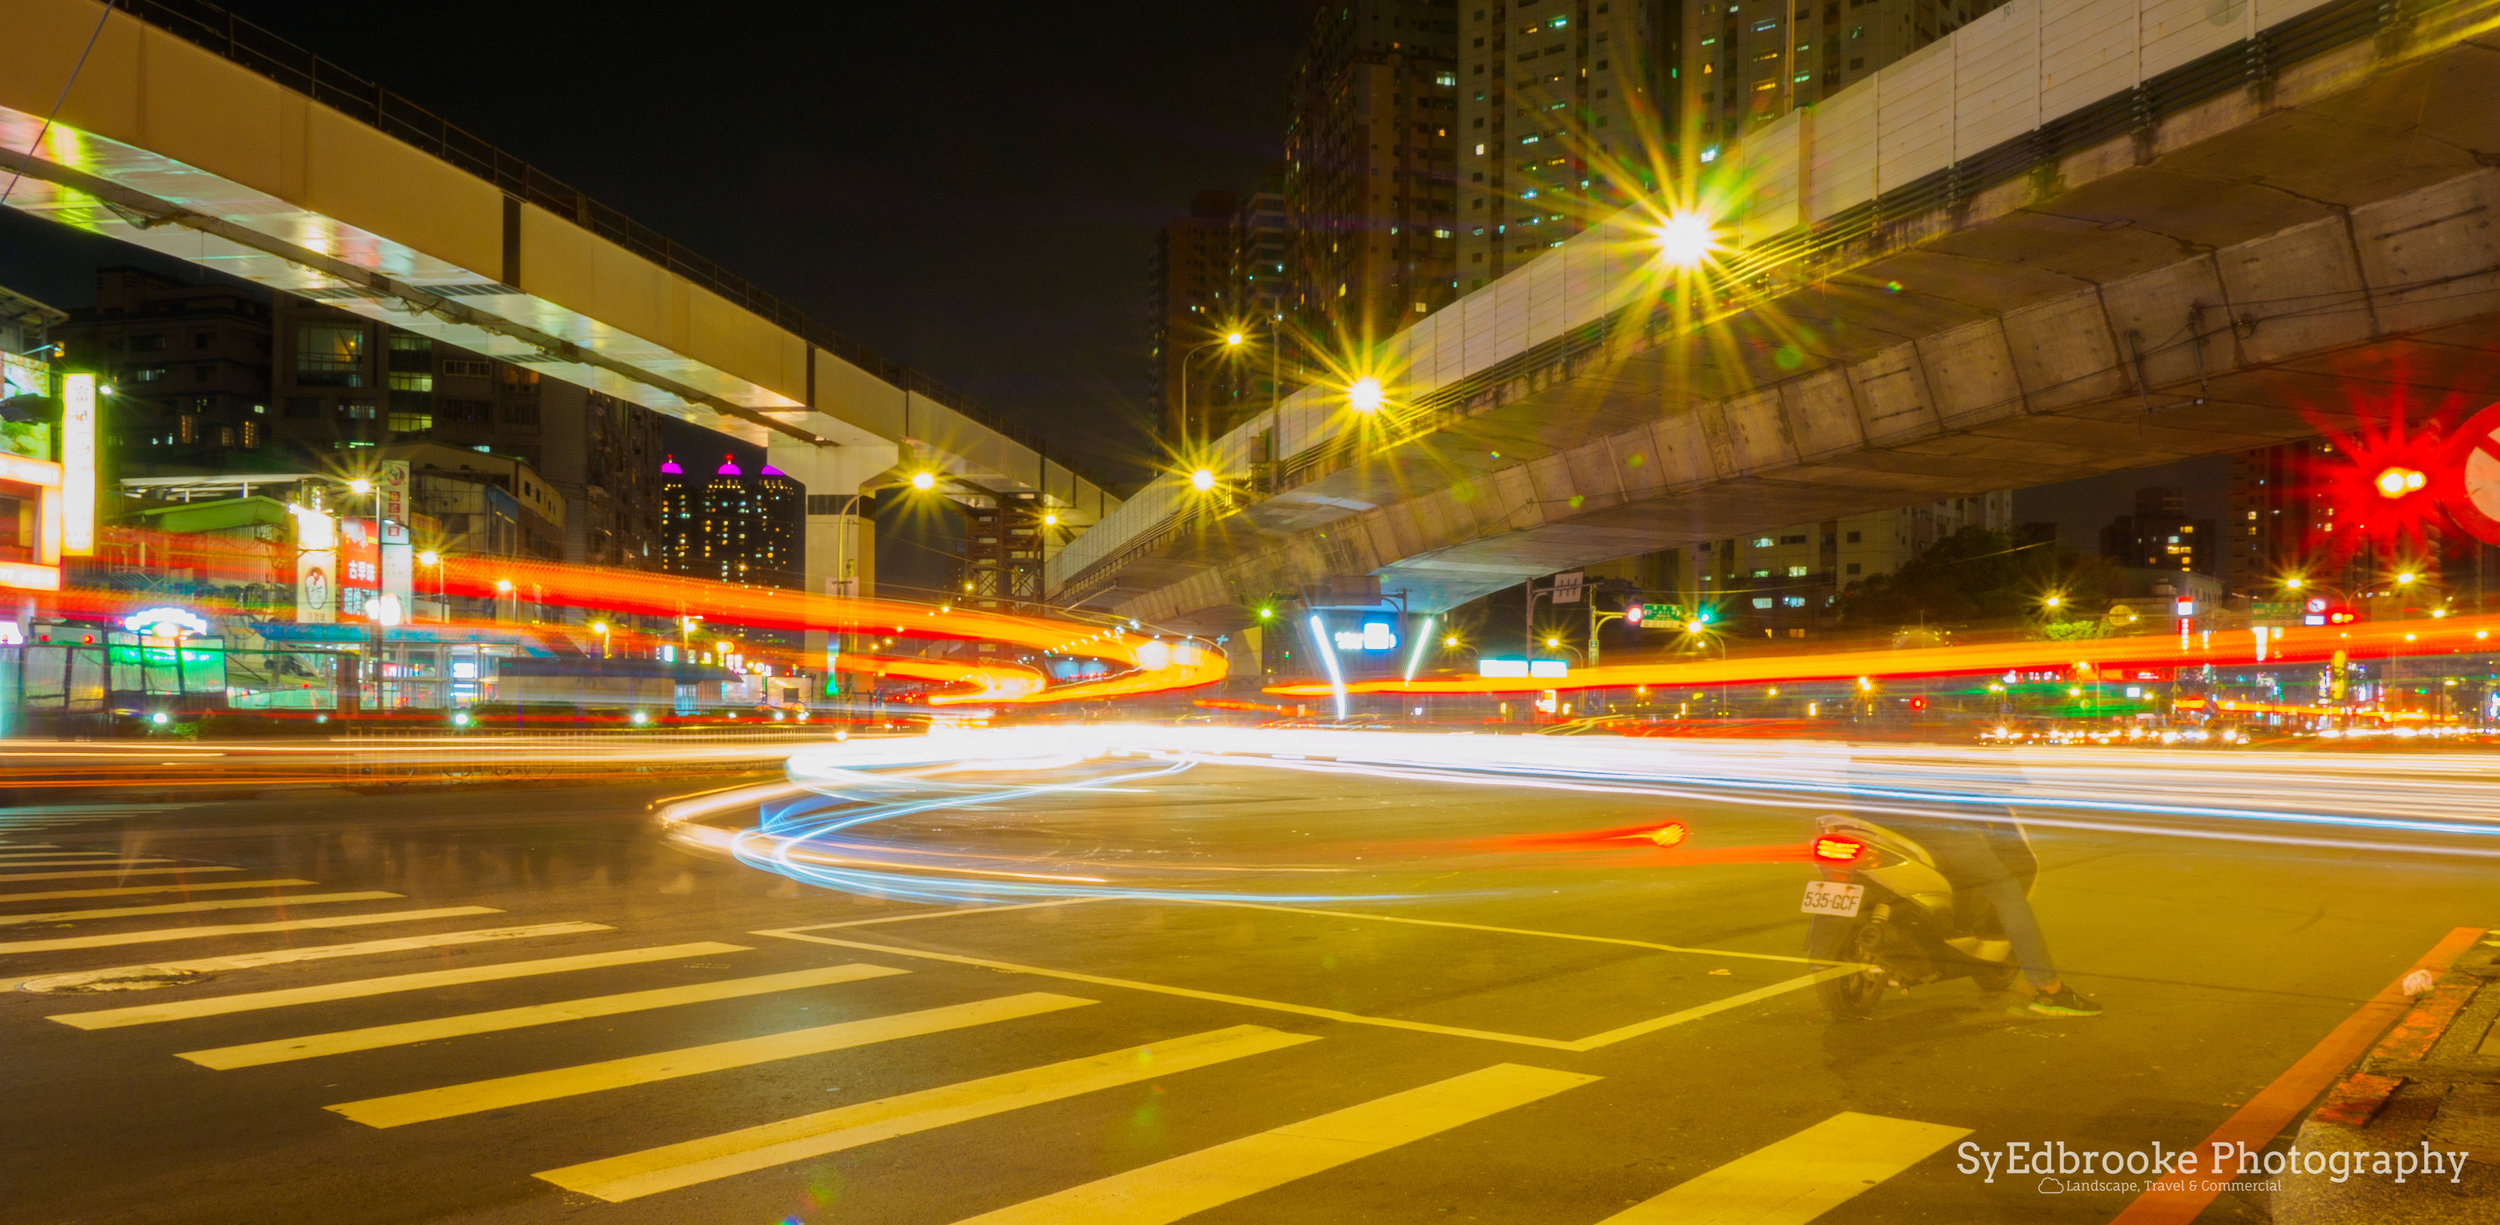 The intersection 2 mins walk from my house. f22, ISO 200, 25, 24mm